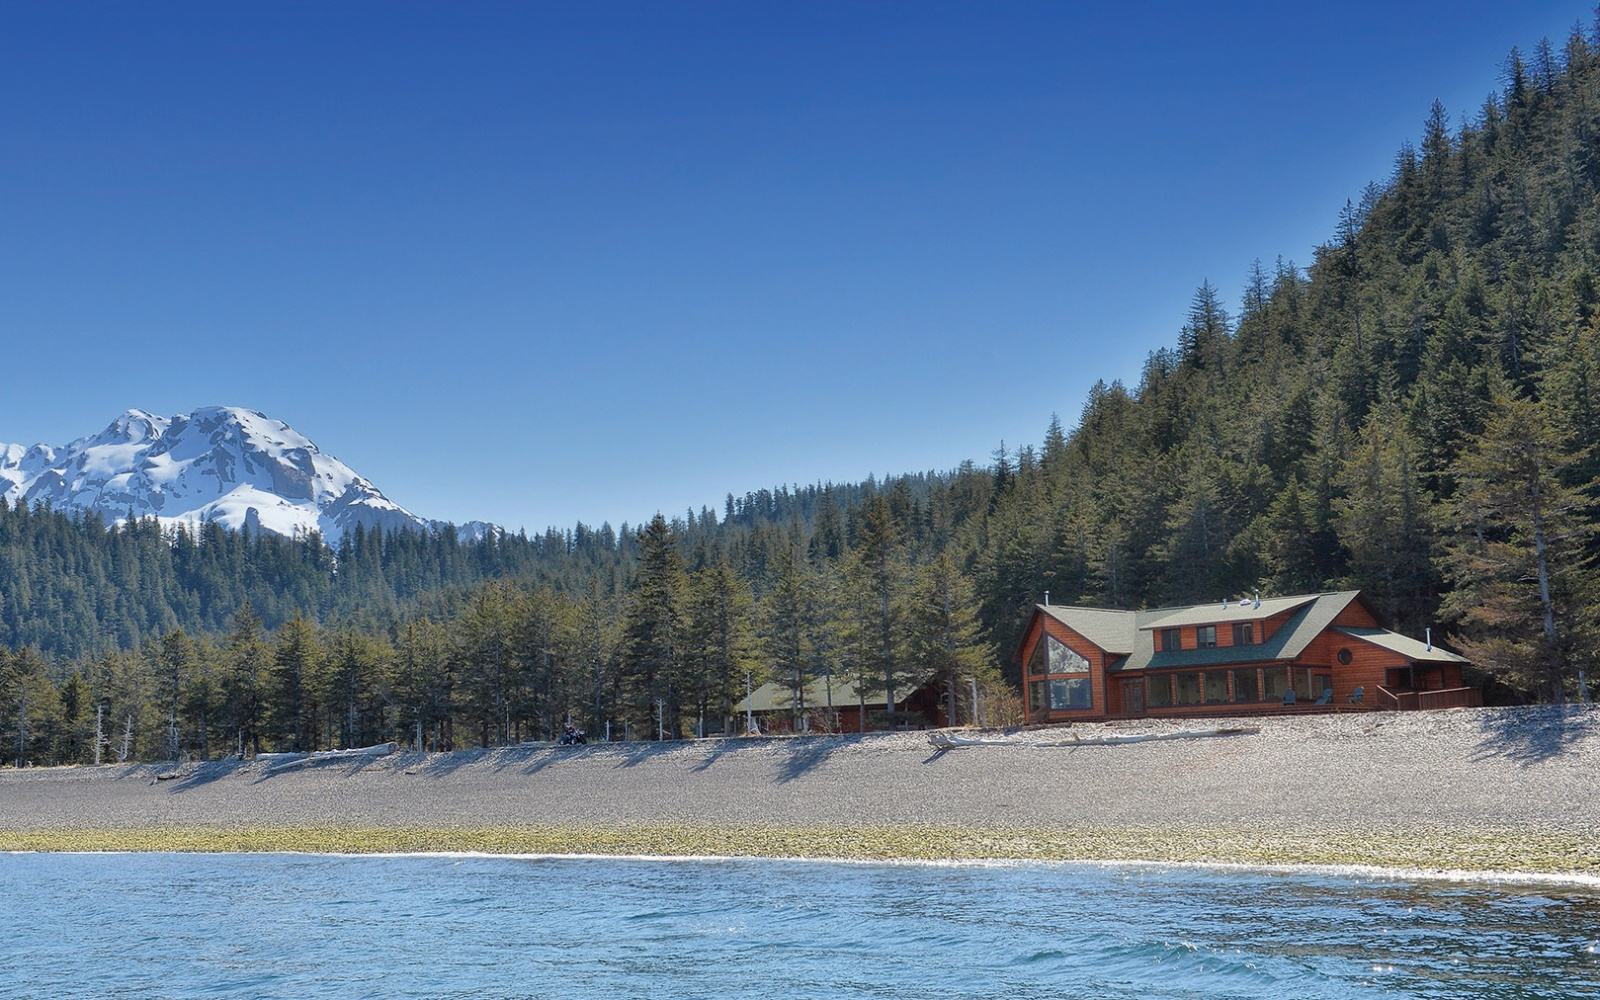 Kenai Fjords Wilderness Lodge in Alaska